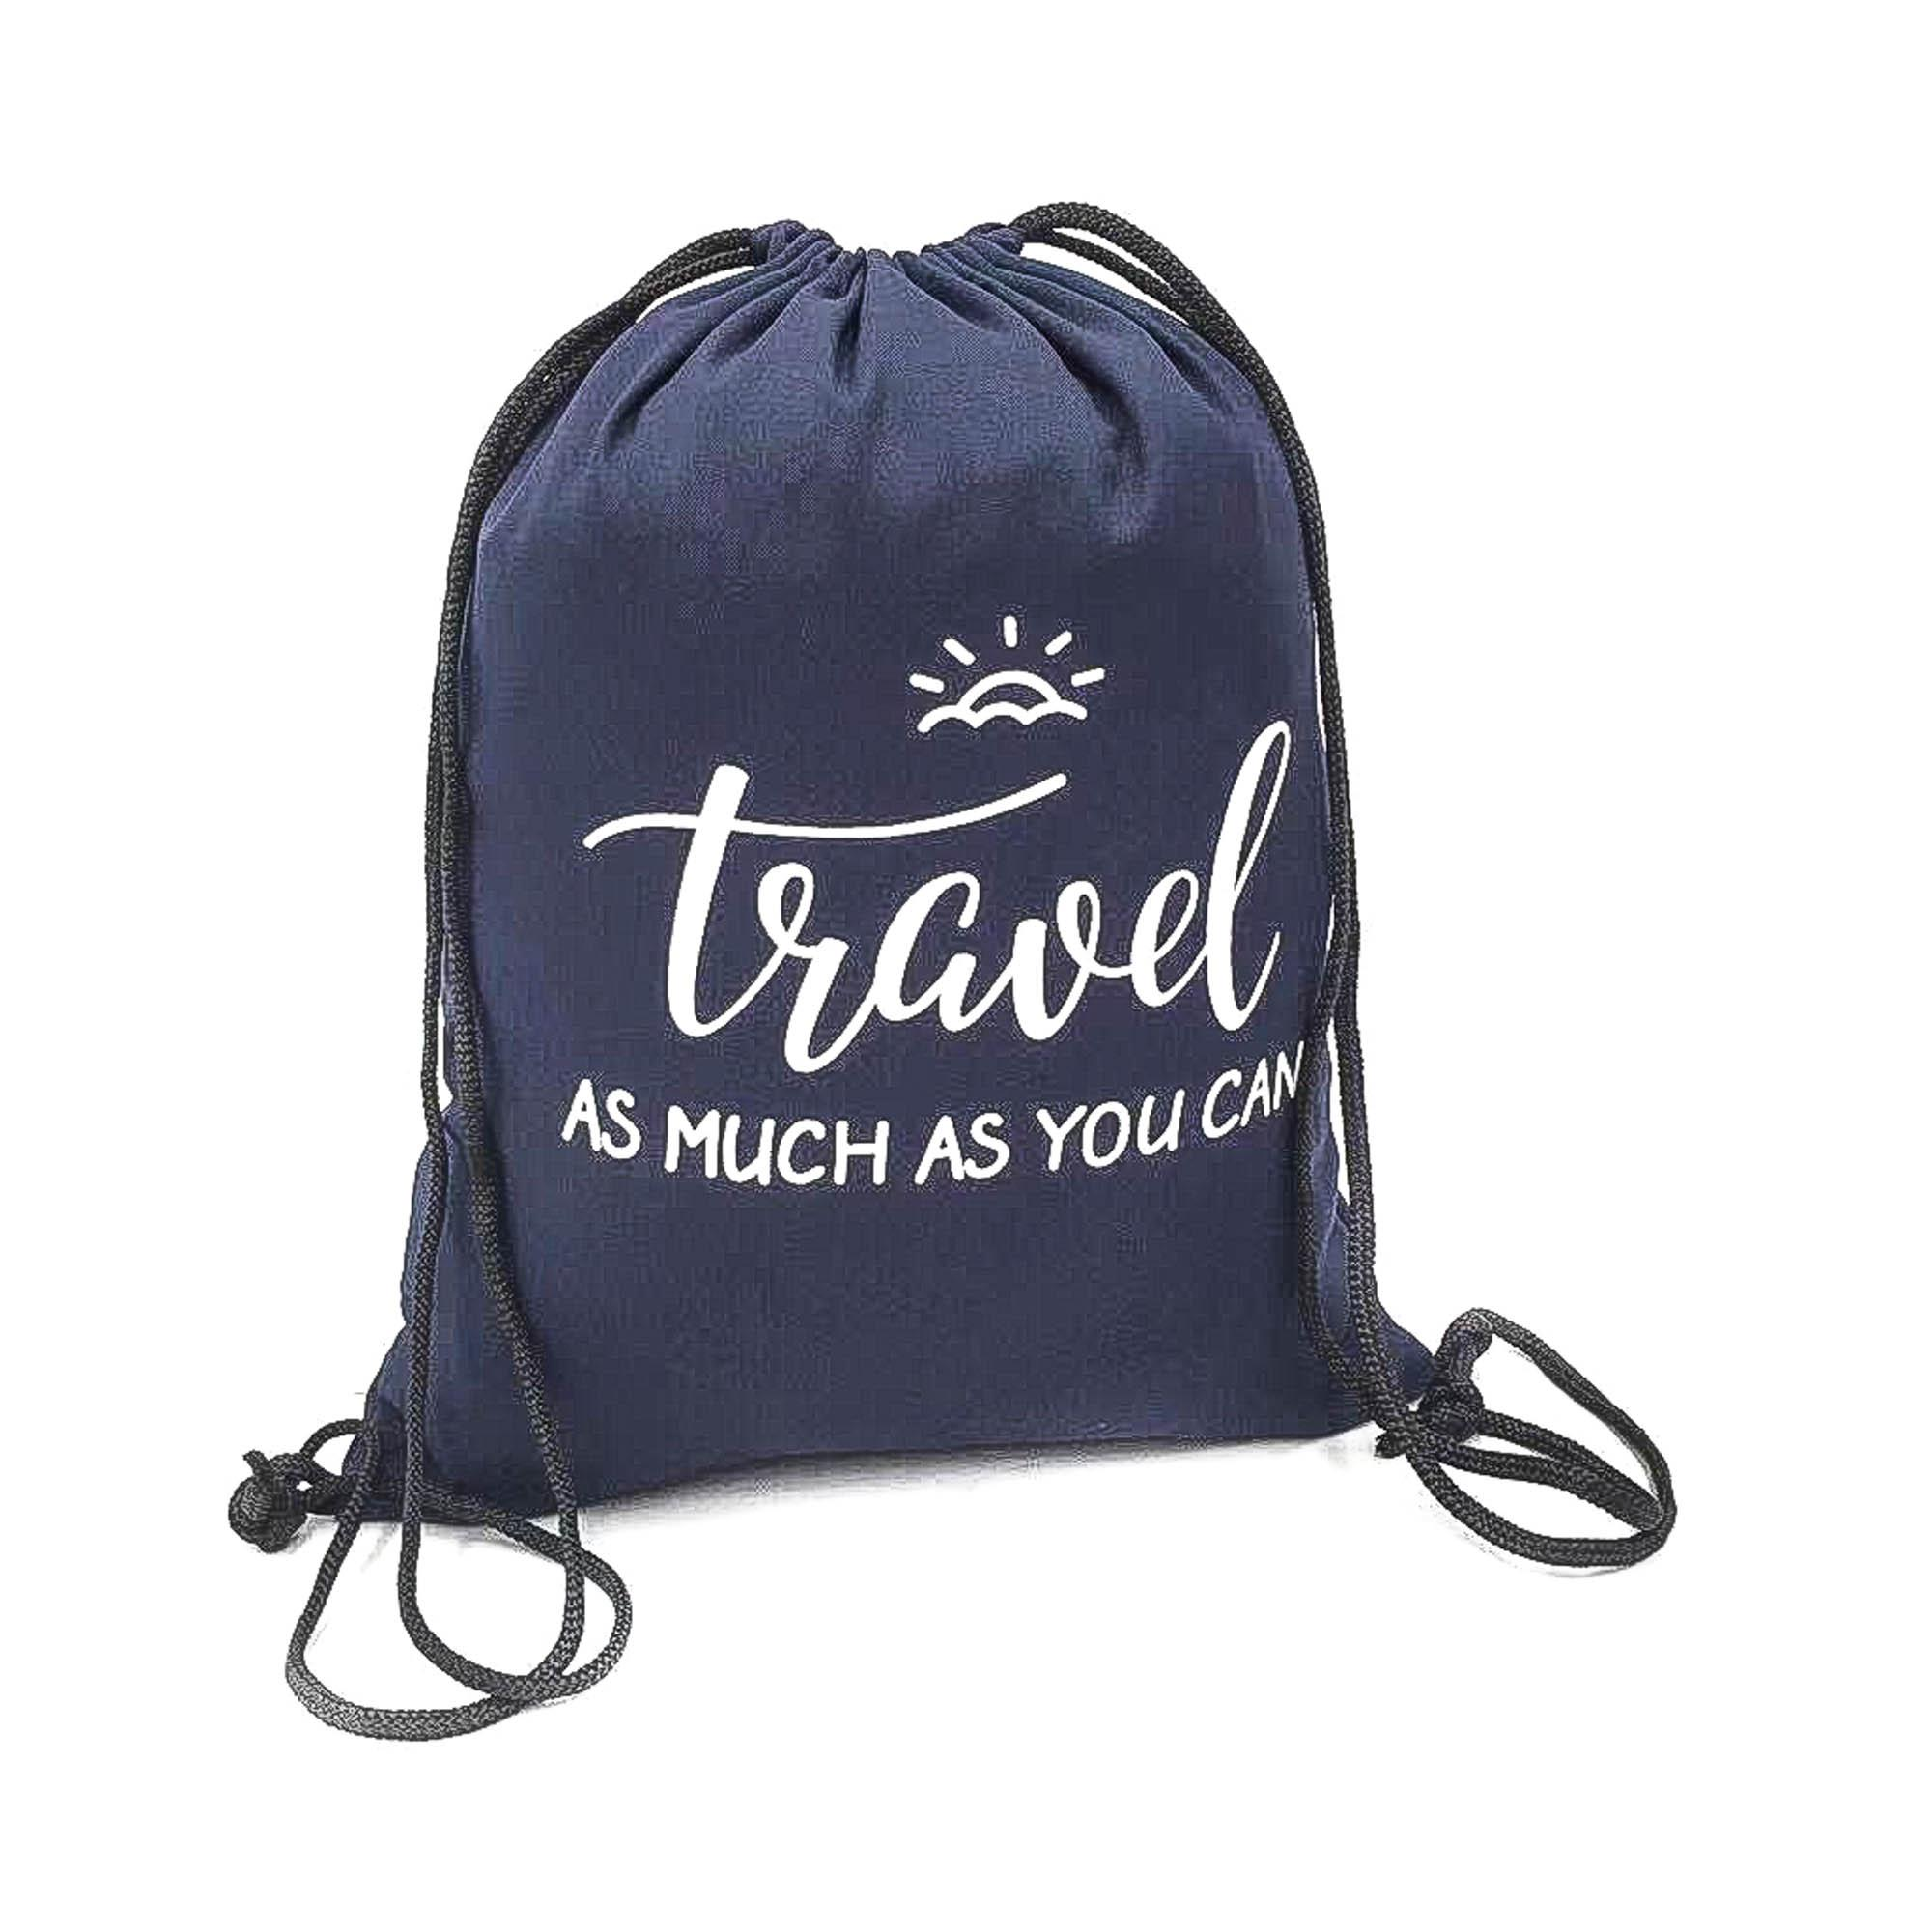 e36594a2ec7c Travel Bag for sale - Travel Luggage online brands